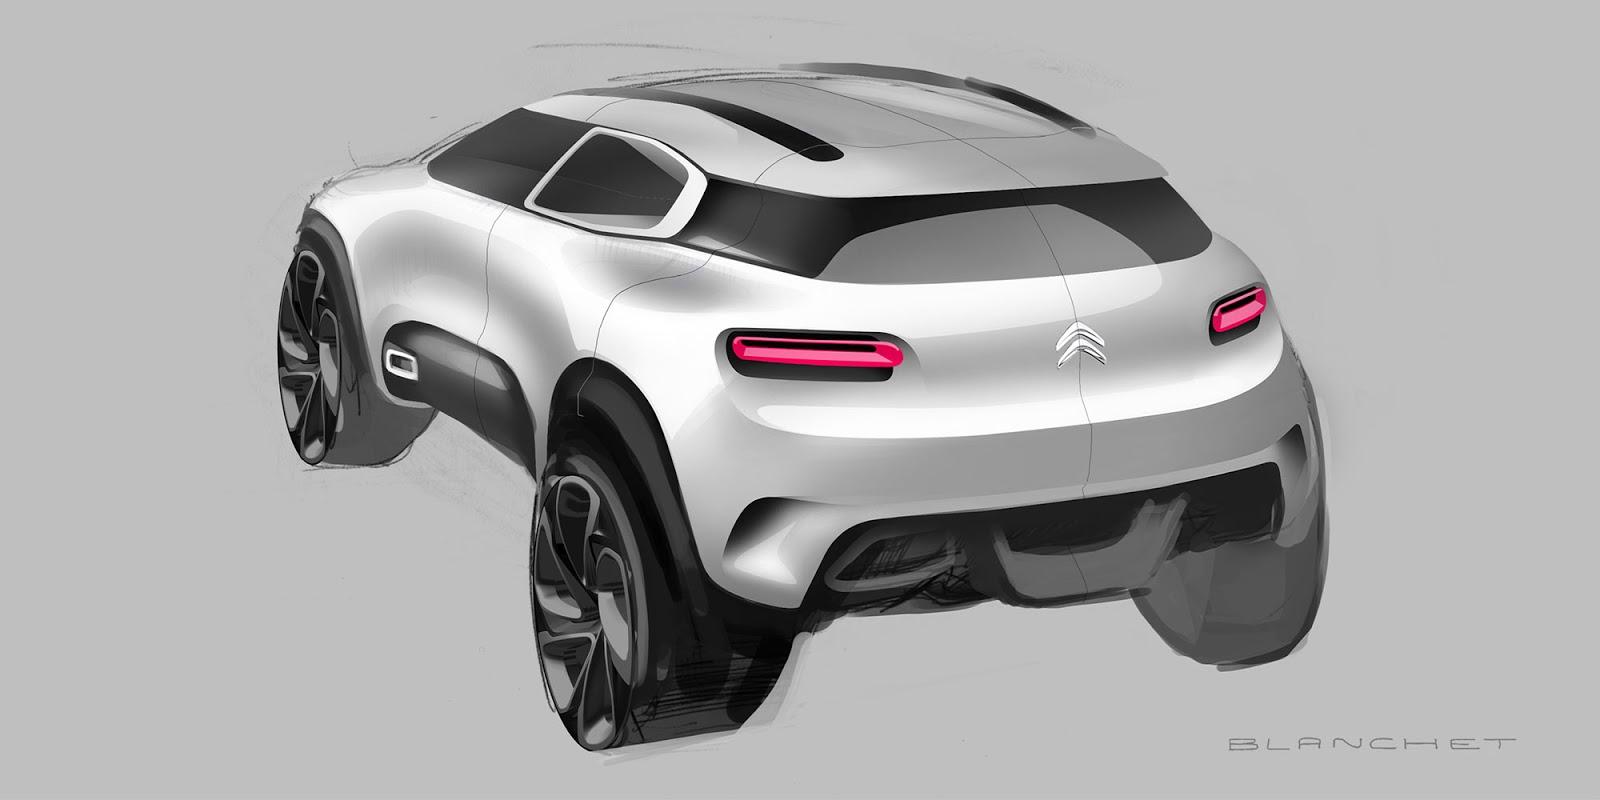 Citroen Aircross concept 2015 sketch by Gregory Blanchet